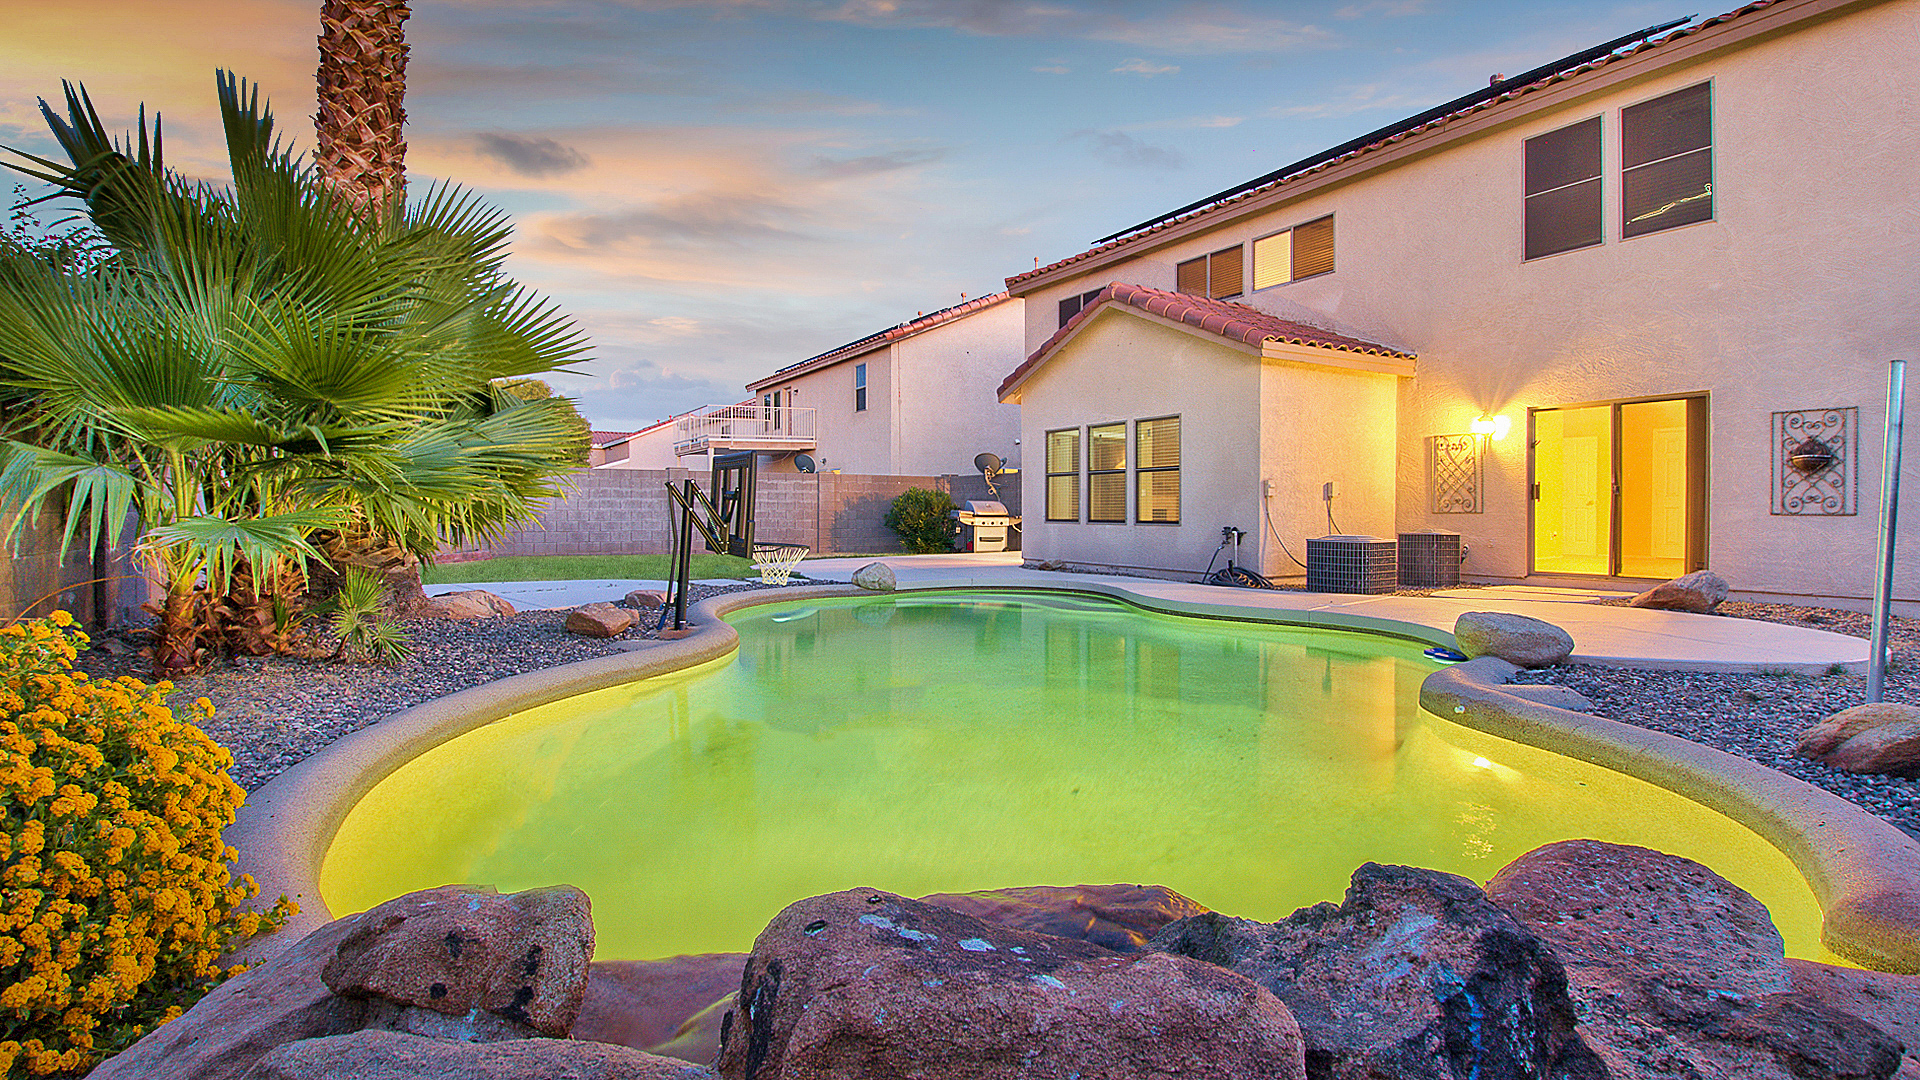 Great home for entertaining! 5 beds – 2.5 bathrooms – loft – very nice POOL!